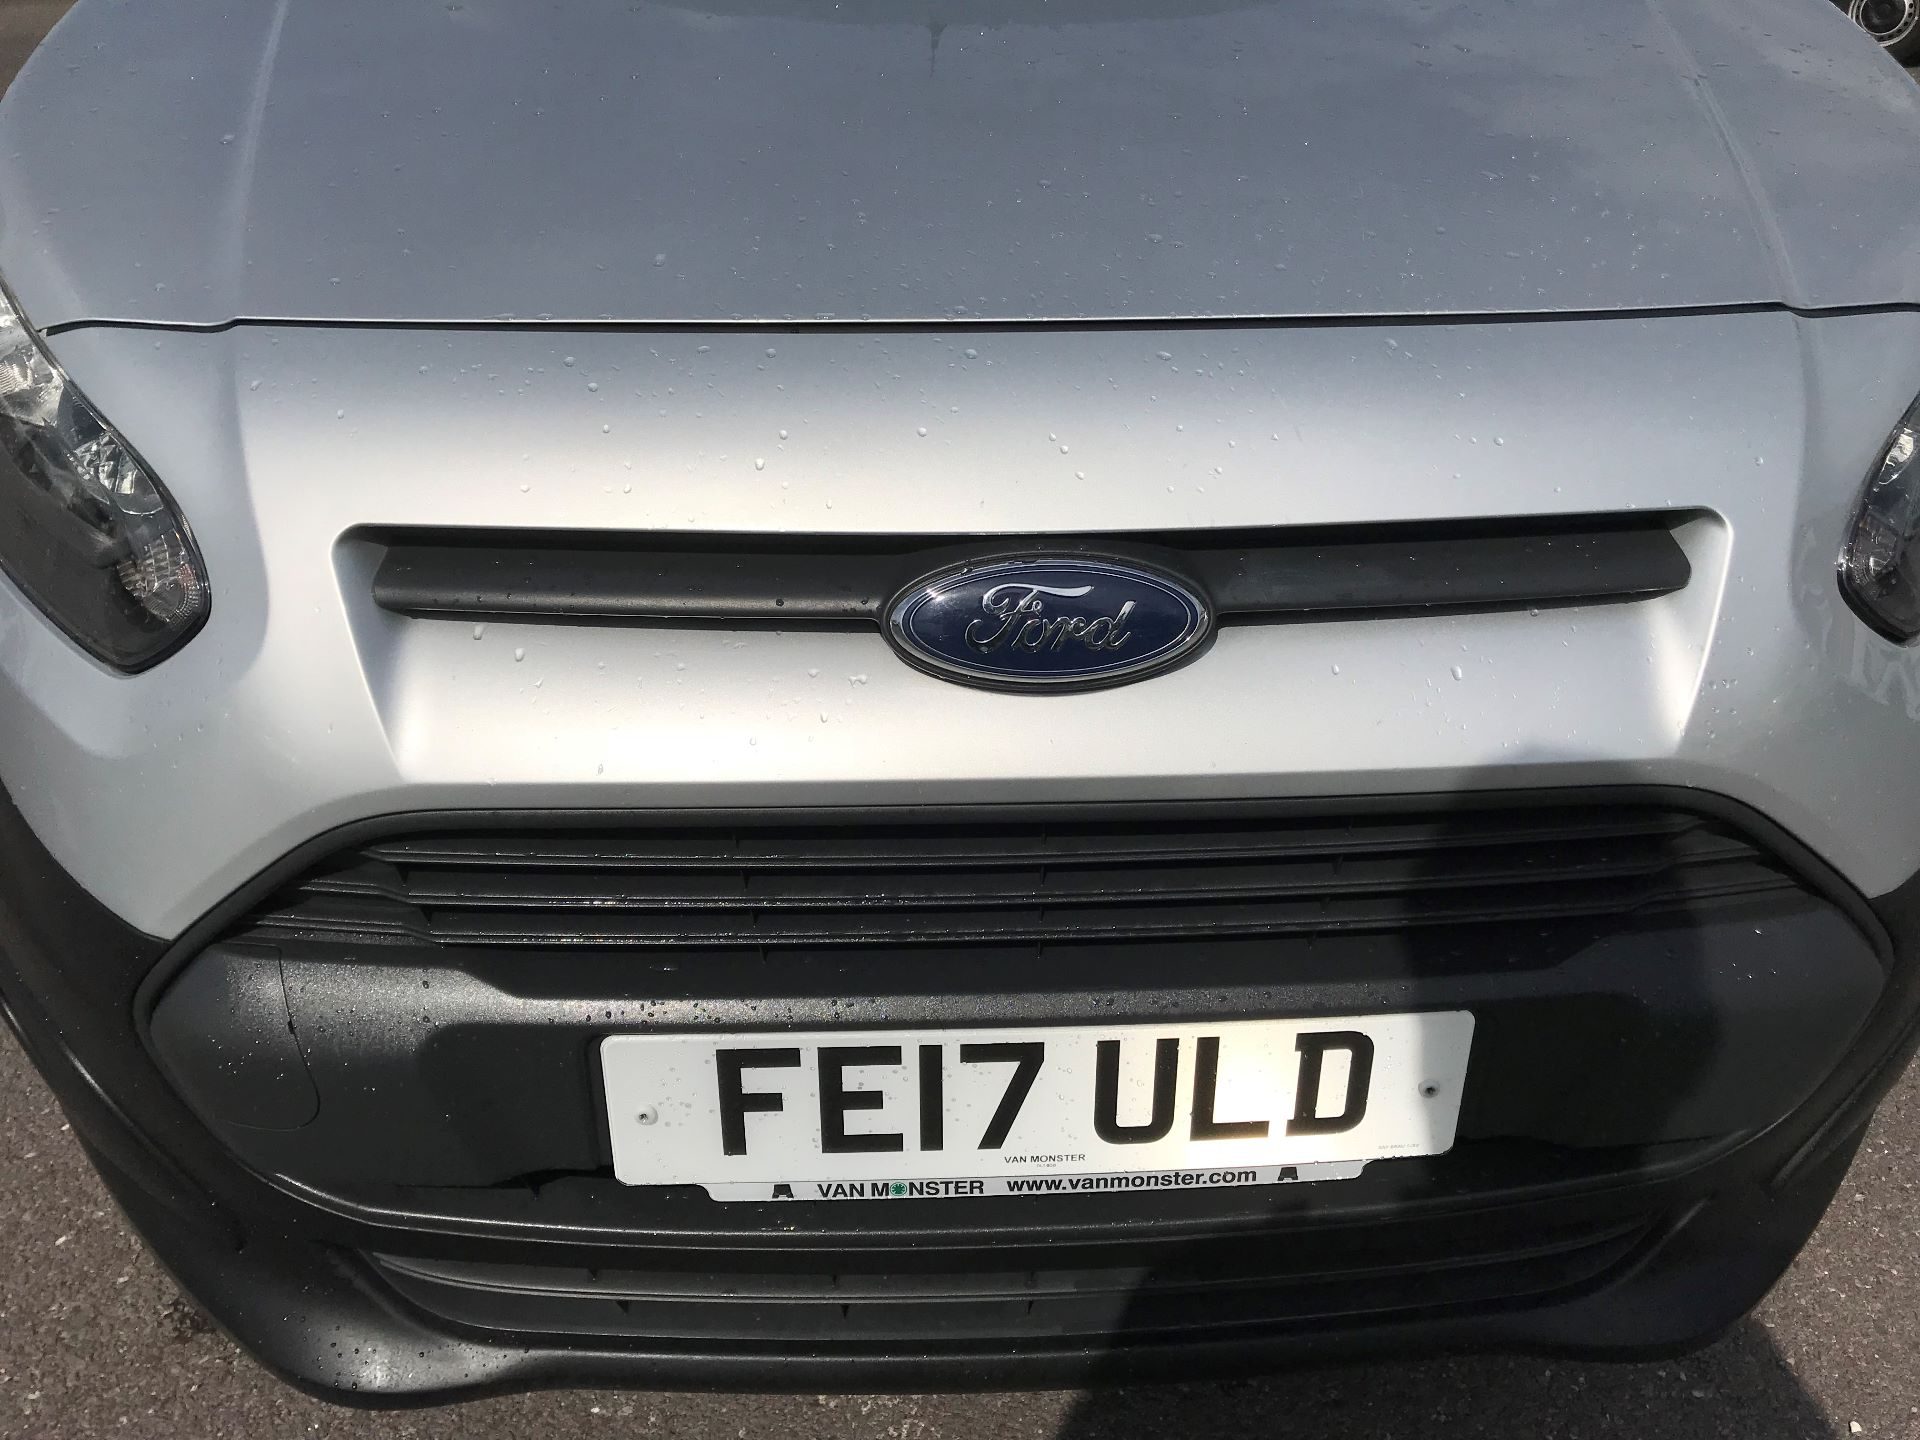 2017 Ford Transit Connect   220 L1 1.5 TDCI 75PS EURO 6 (FE17ULD) Image 12